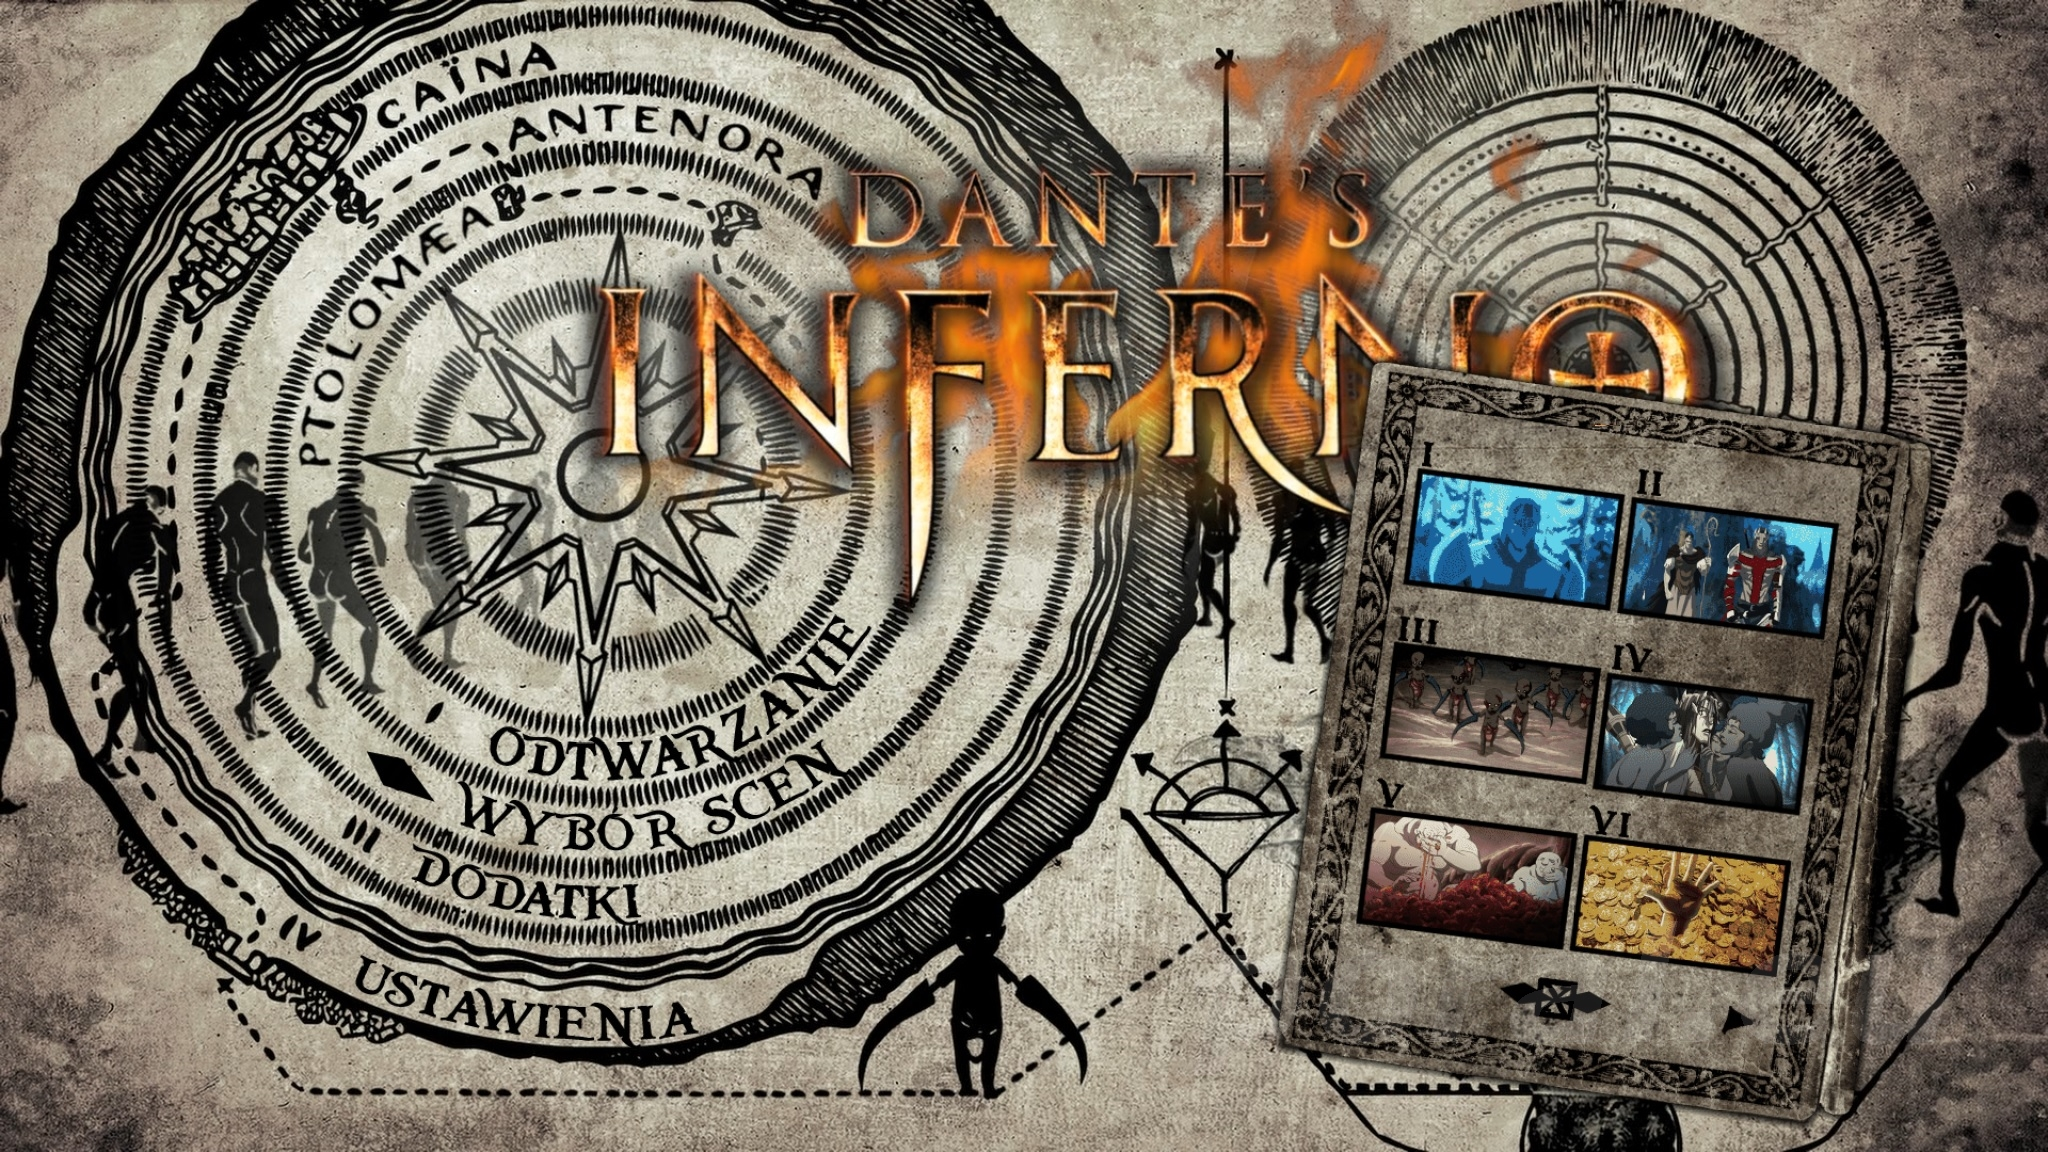 dante's inferno an animated epic Movie: dante's inferno: an animated epic (2010) – dante journeys through the nine circles of hell -- limbo, lust, gluttony, greed, anger, heresy, violence, fraud and treachery -- in search of his true love, beatrice | download torrents at zooqle.